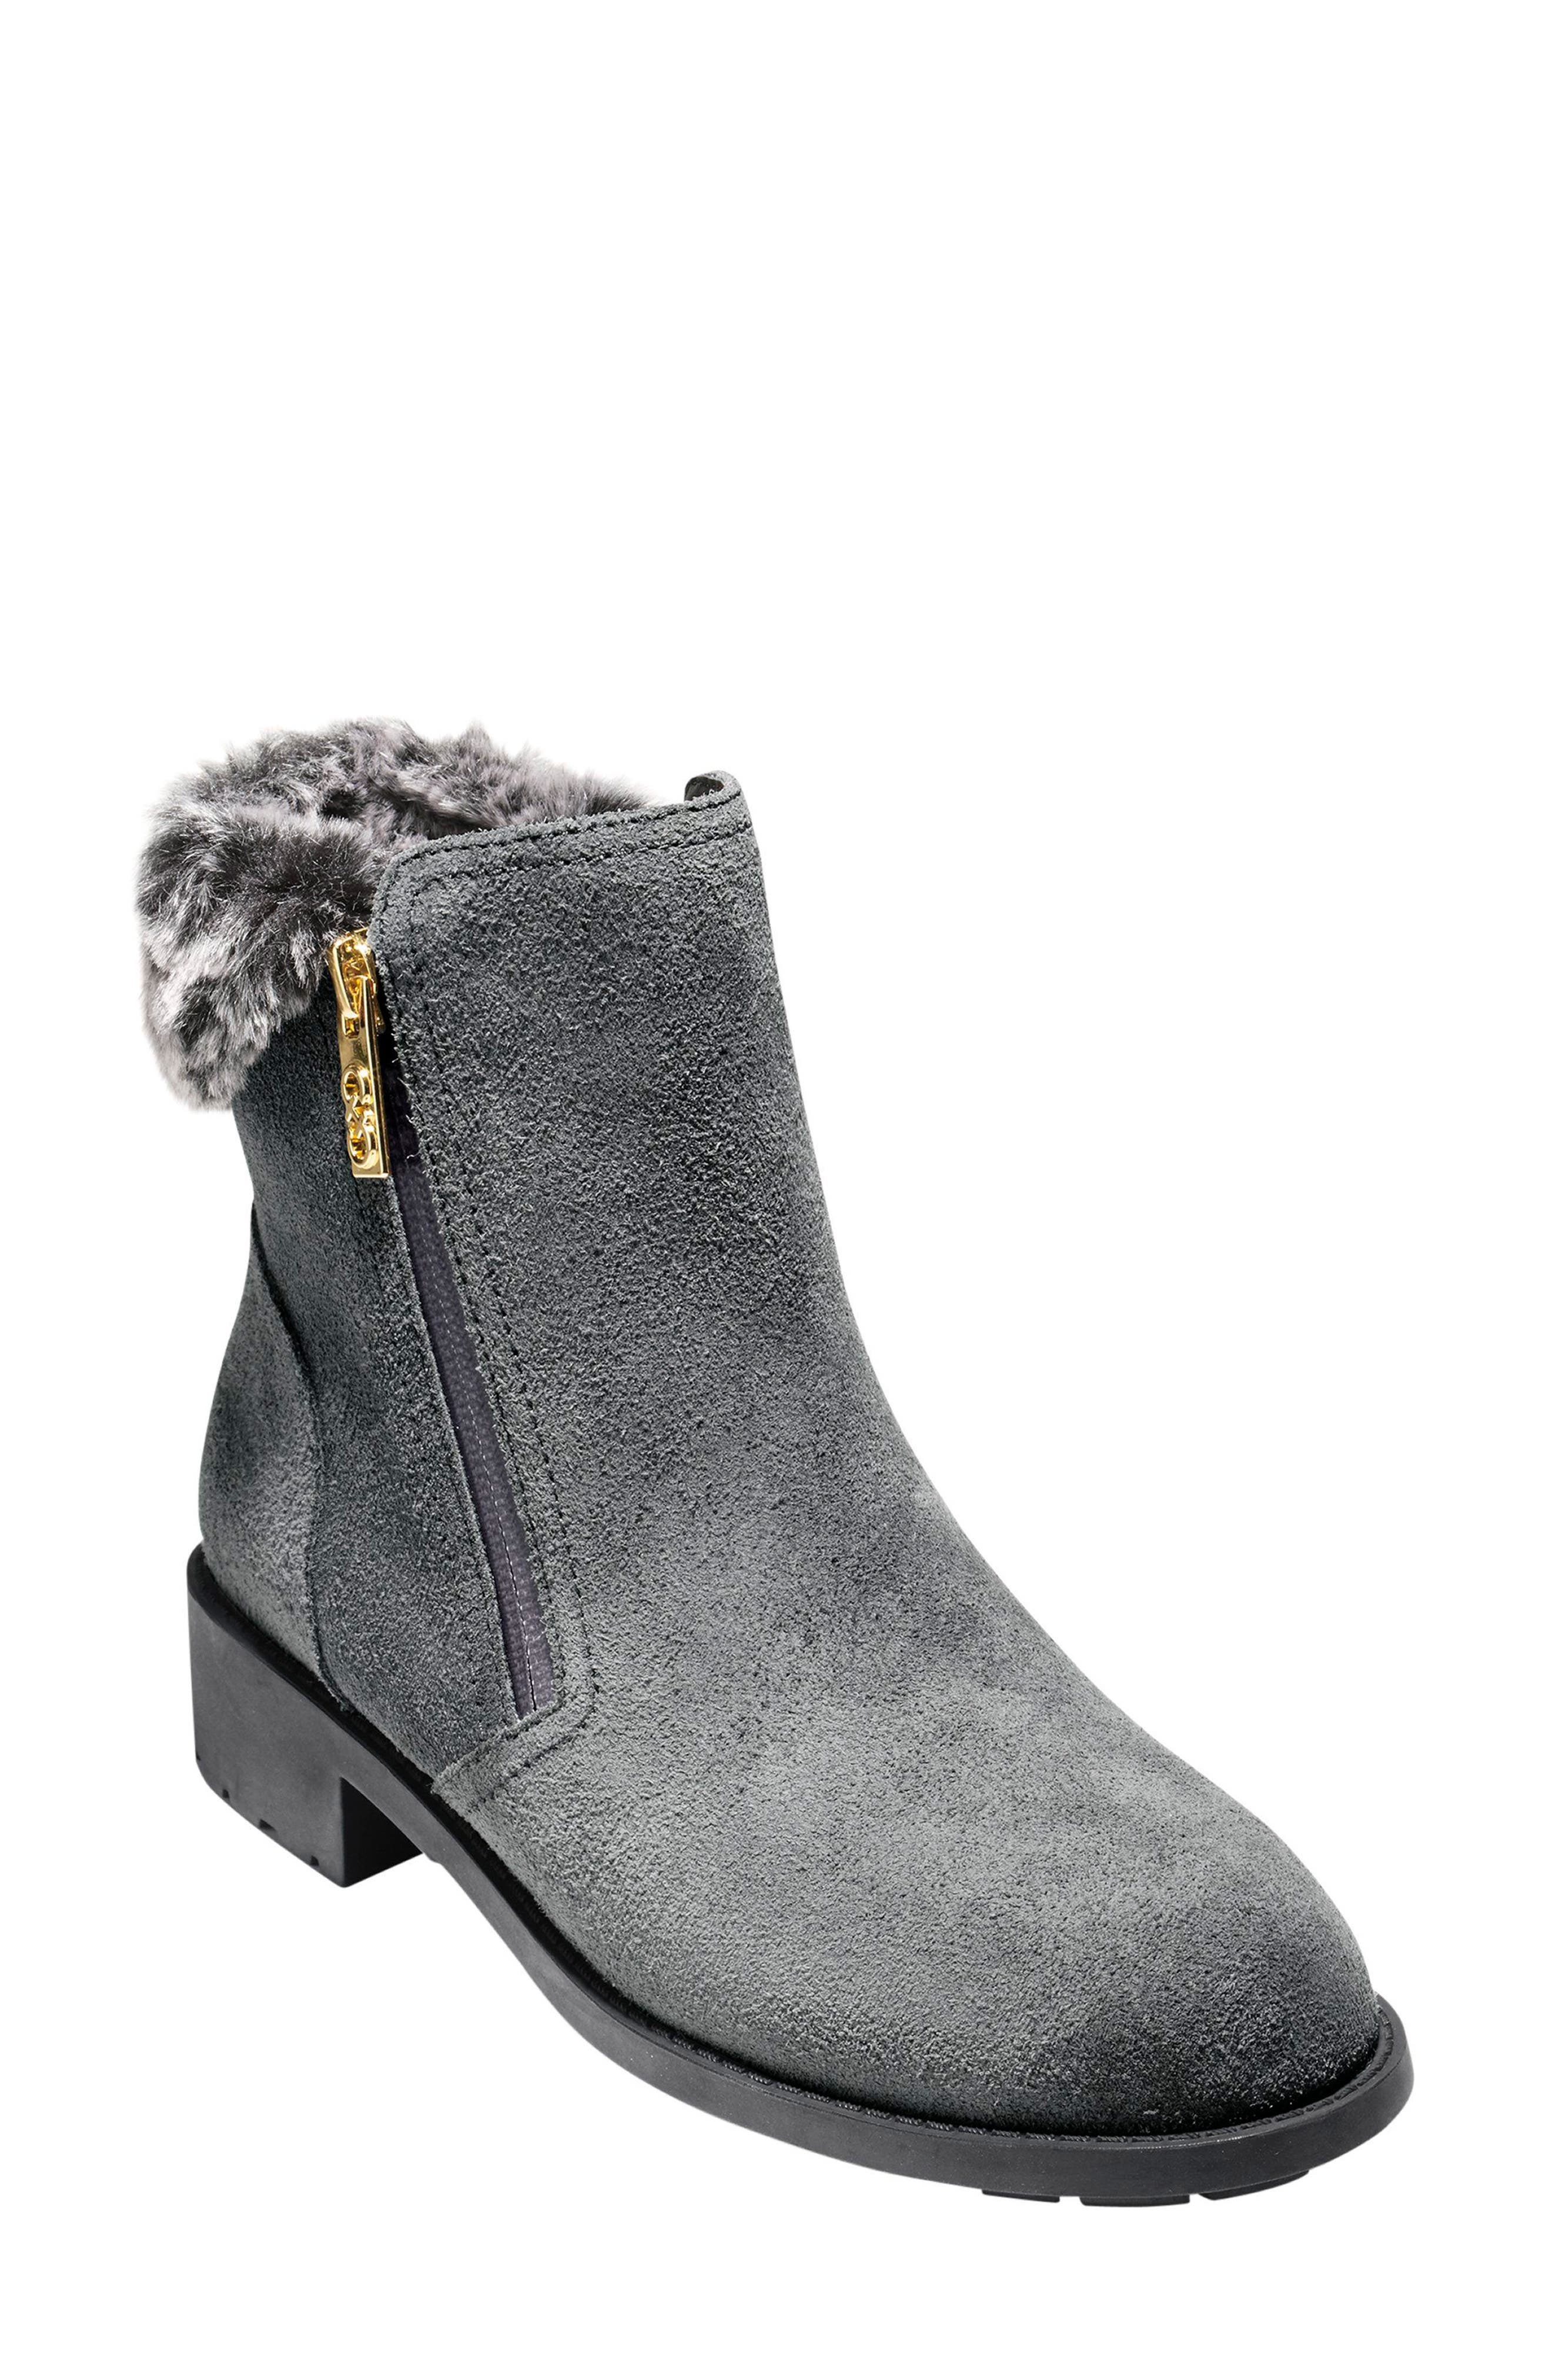 Quinney Waterproof Bootie with Faux Shearling Trim,                             Main thumbnail 1, color,                             Castlerock Waterproof Suede